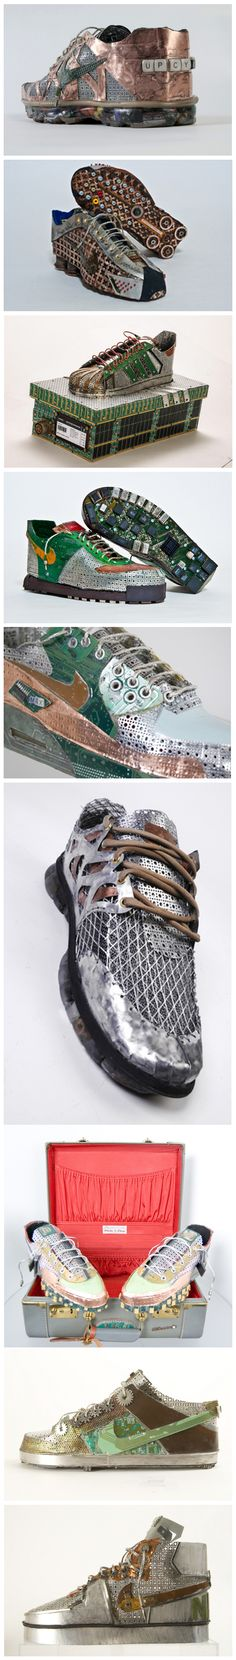 Fabulous Shoe Sculptures Made by Gabriel Dishaw - Upcycled Shoes & Tecnological Stuff